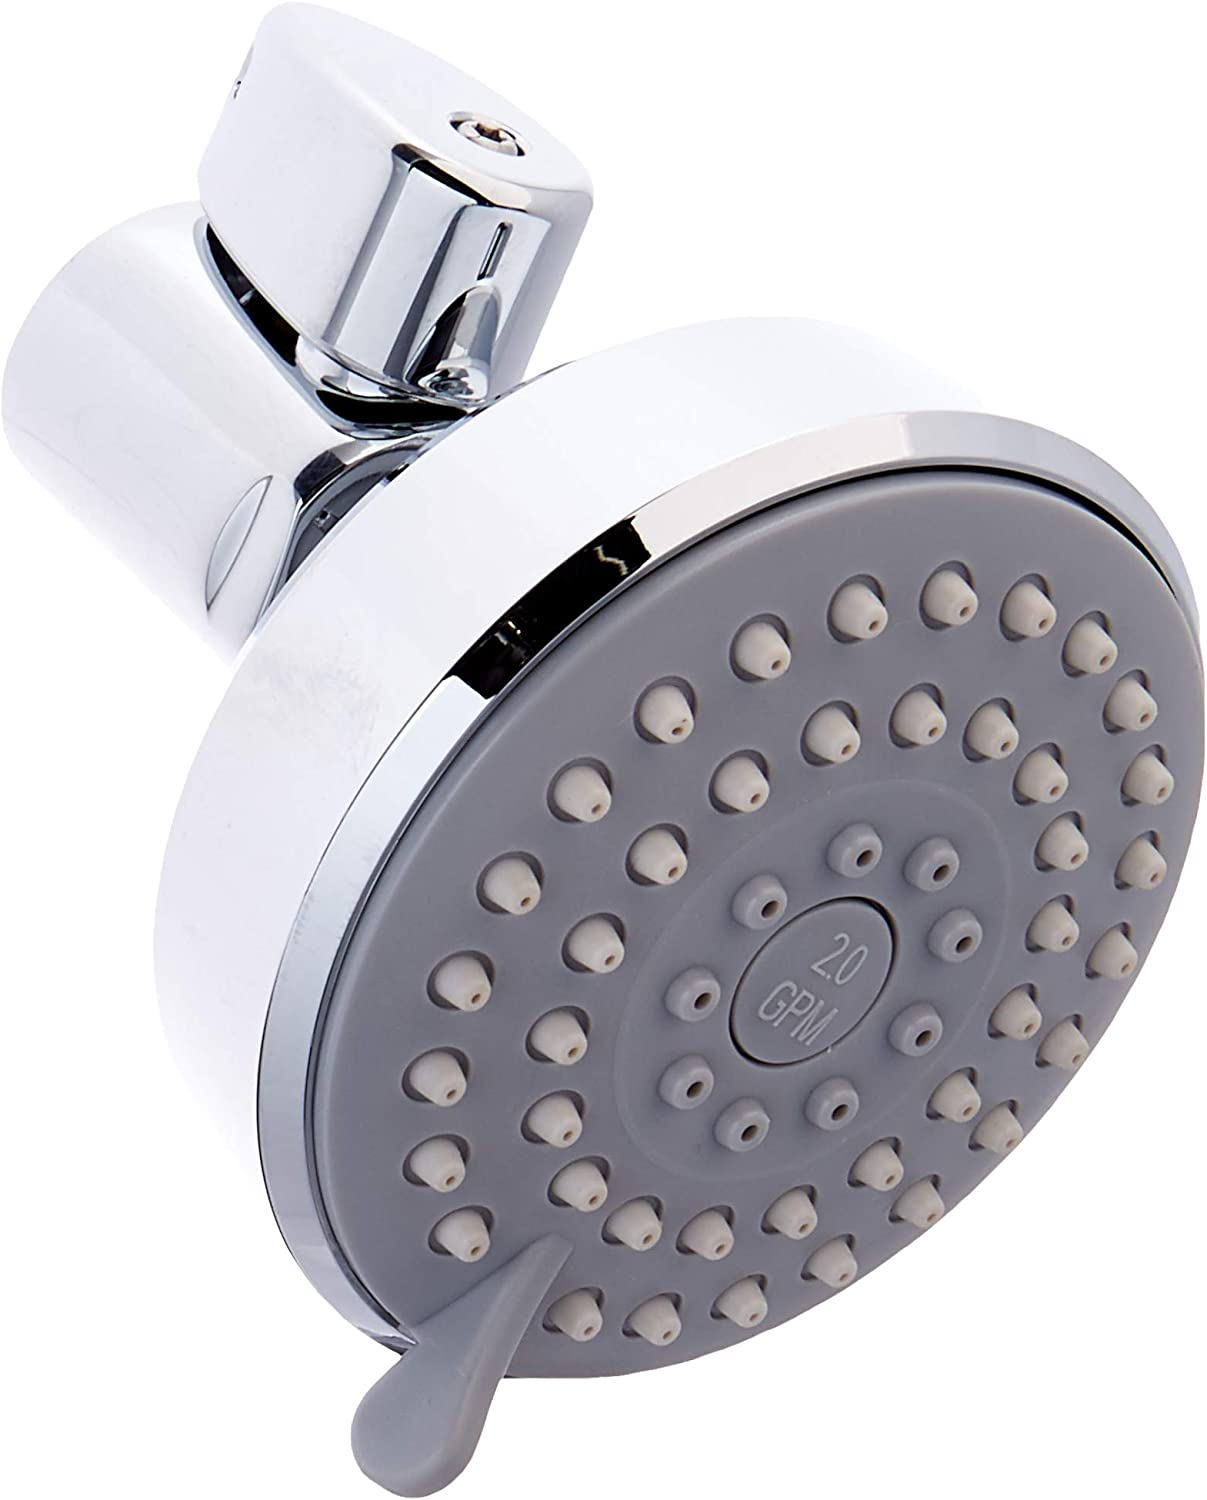 ShowerStart LLC Multifunction ShowerStart TSV 2.0 gpm Shower Head, Polished Chrome